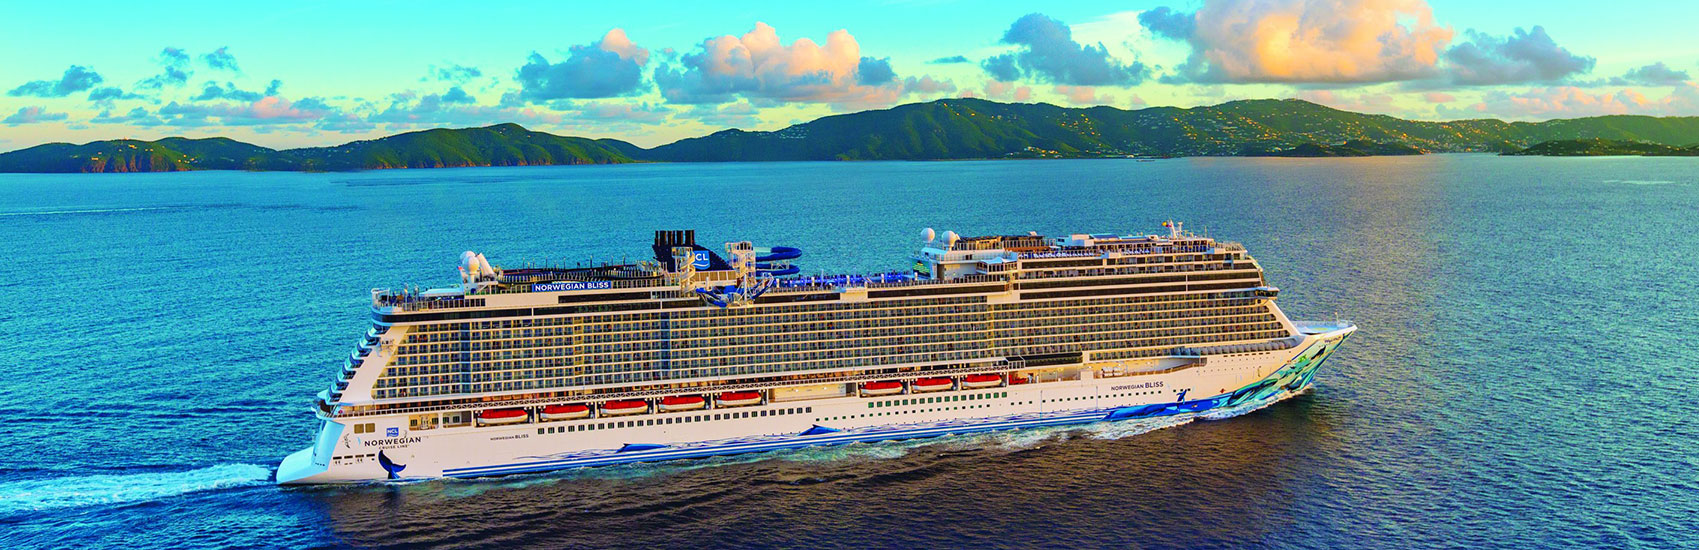 Norwegian Cruise Line's Commitment to Health and Safety